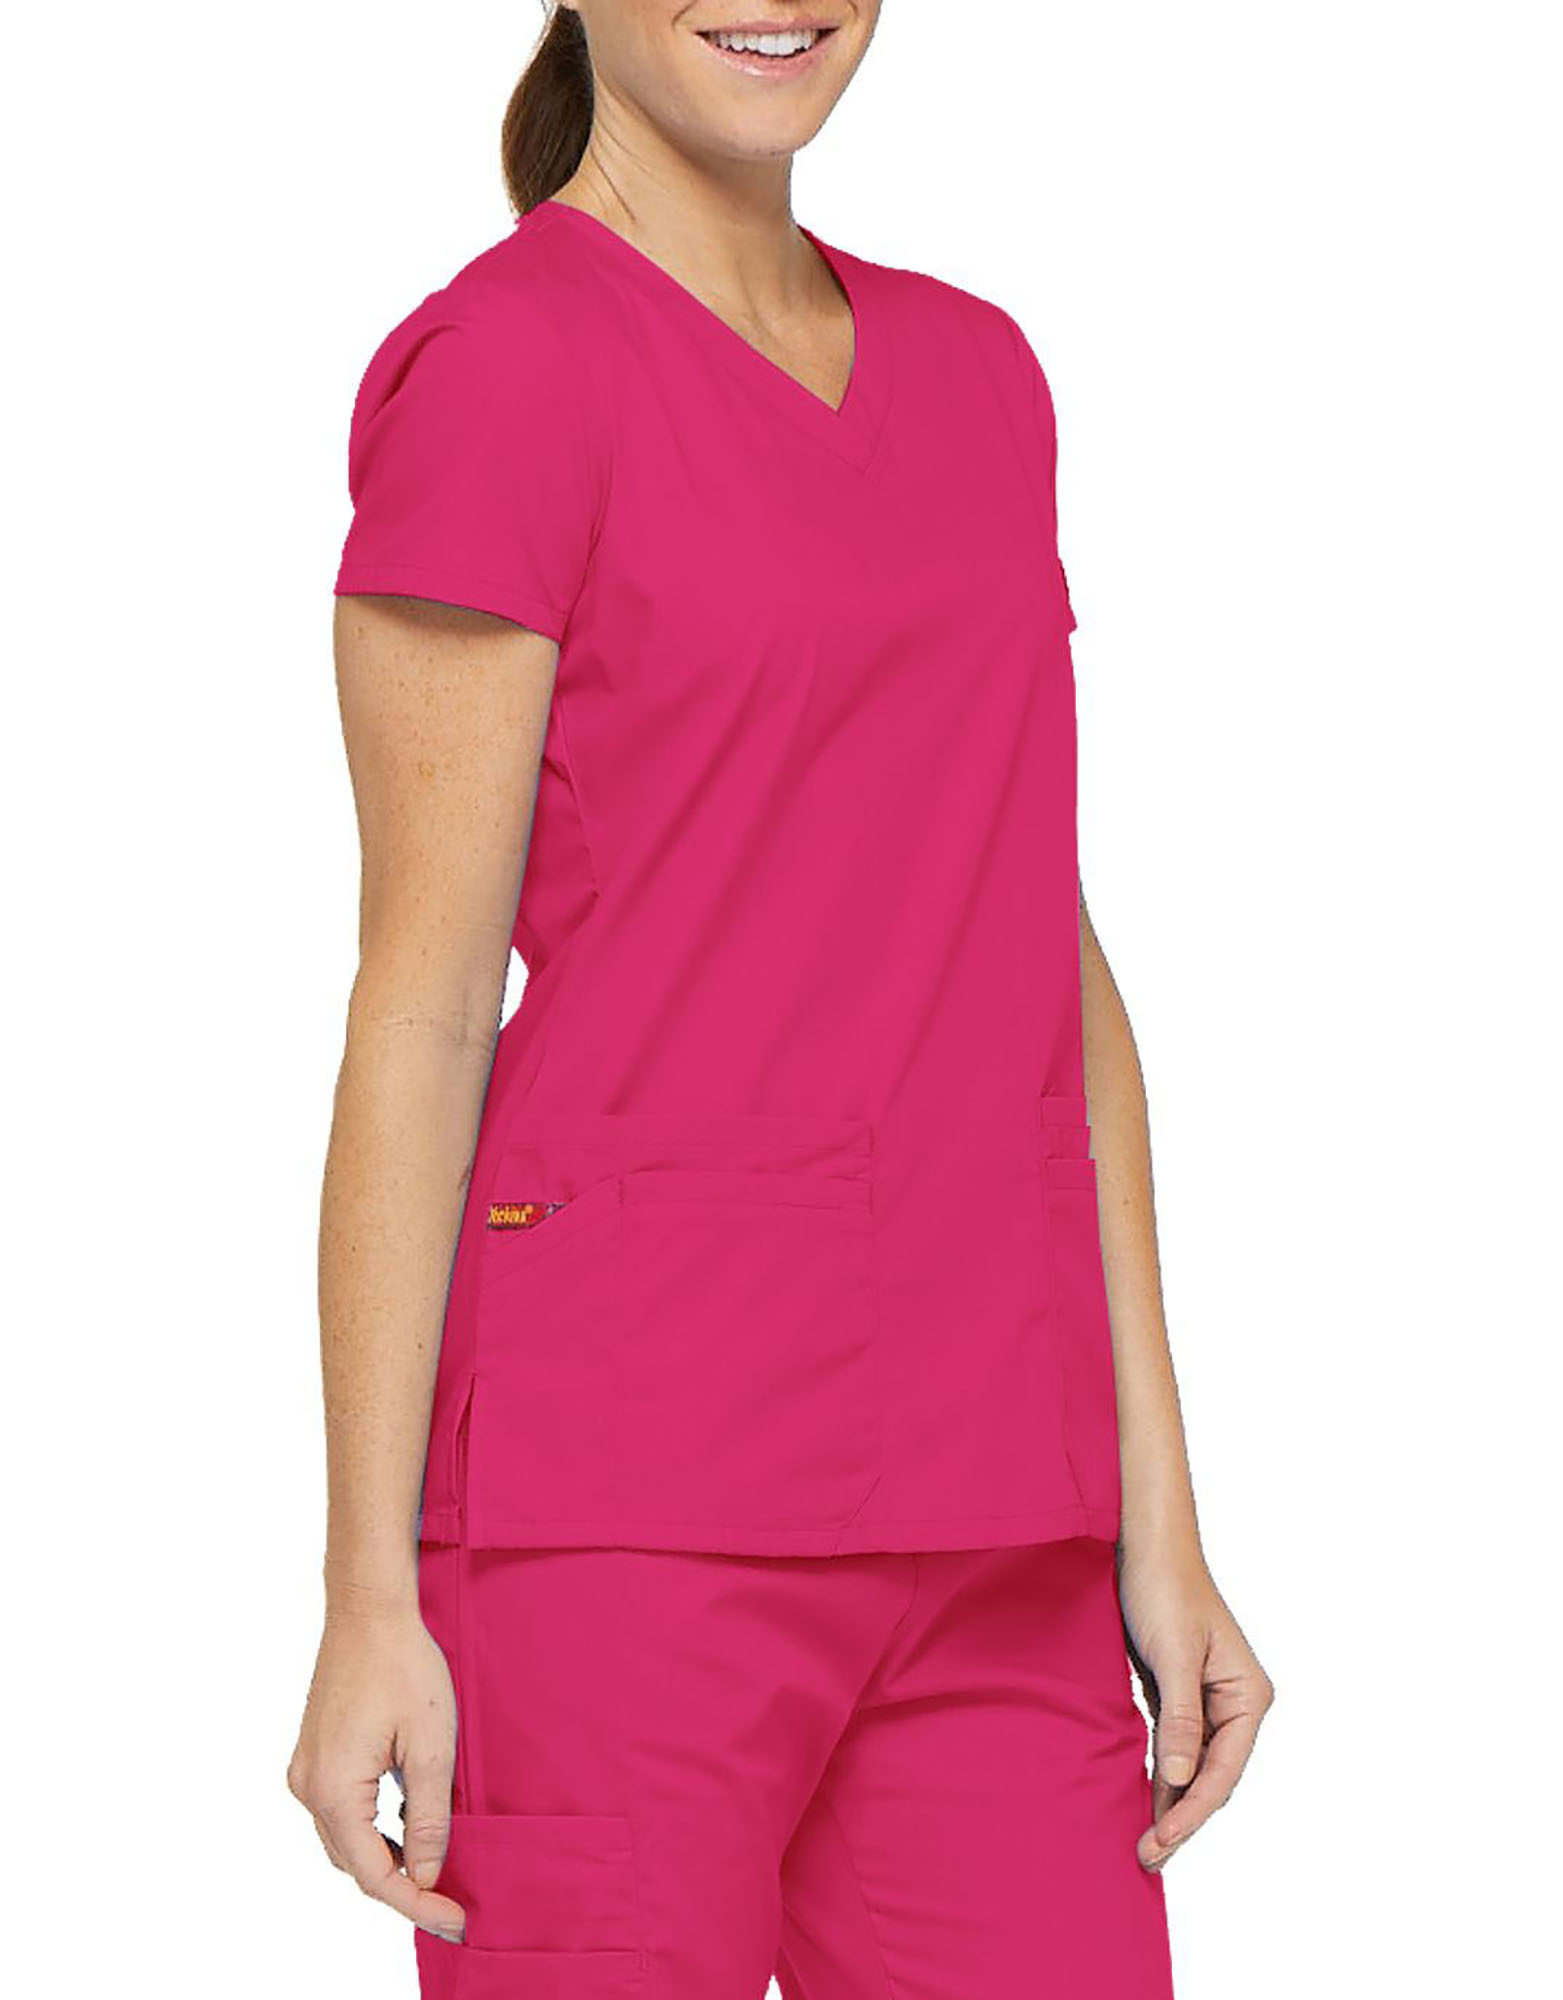 Women's EDS Signature V-Neck Scrub Top with Pen Slot - Hot Pink (HPK)